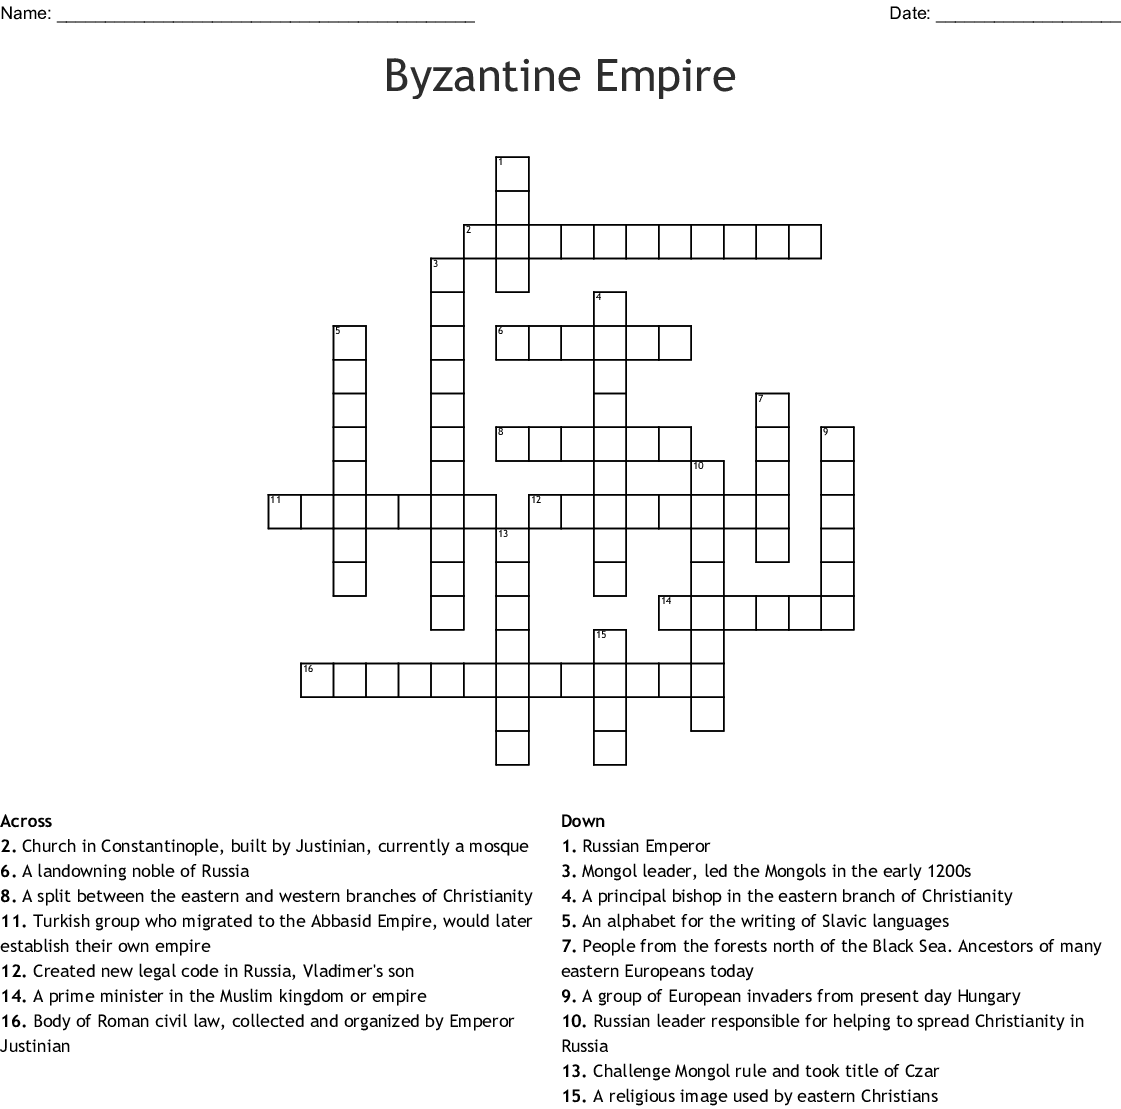 Byzantine Empire Crossword